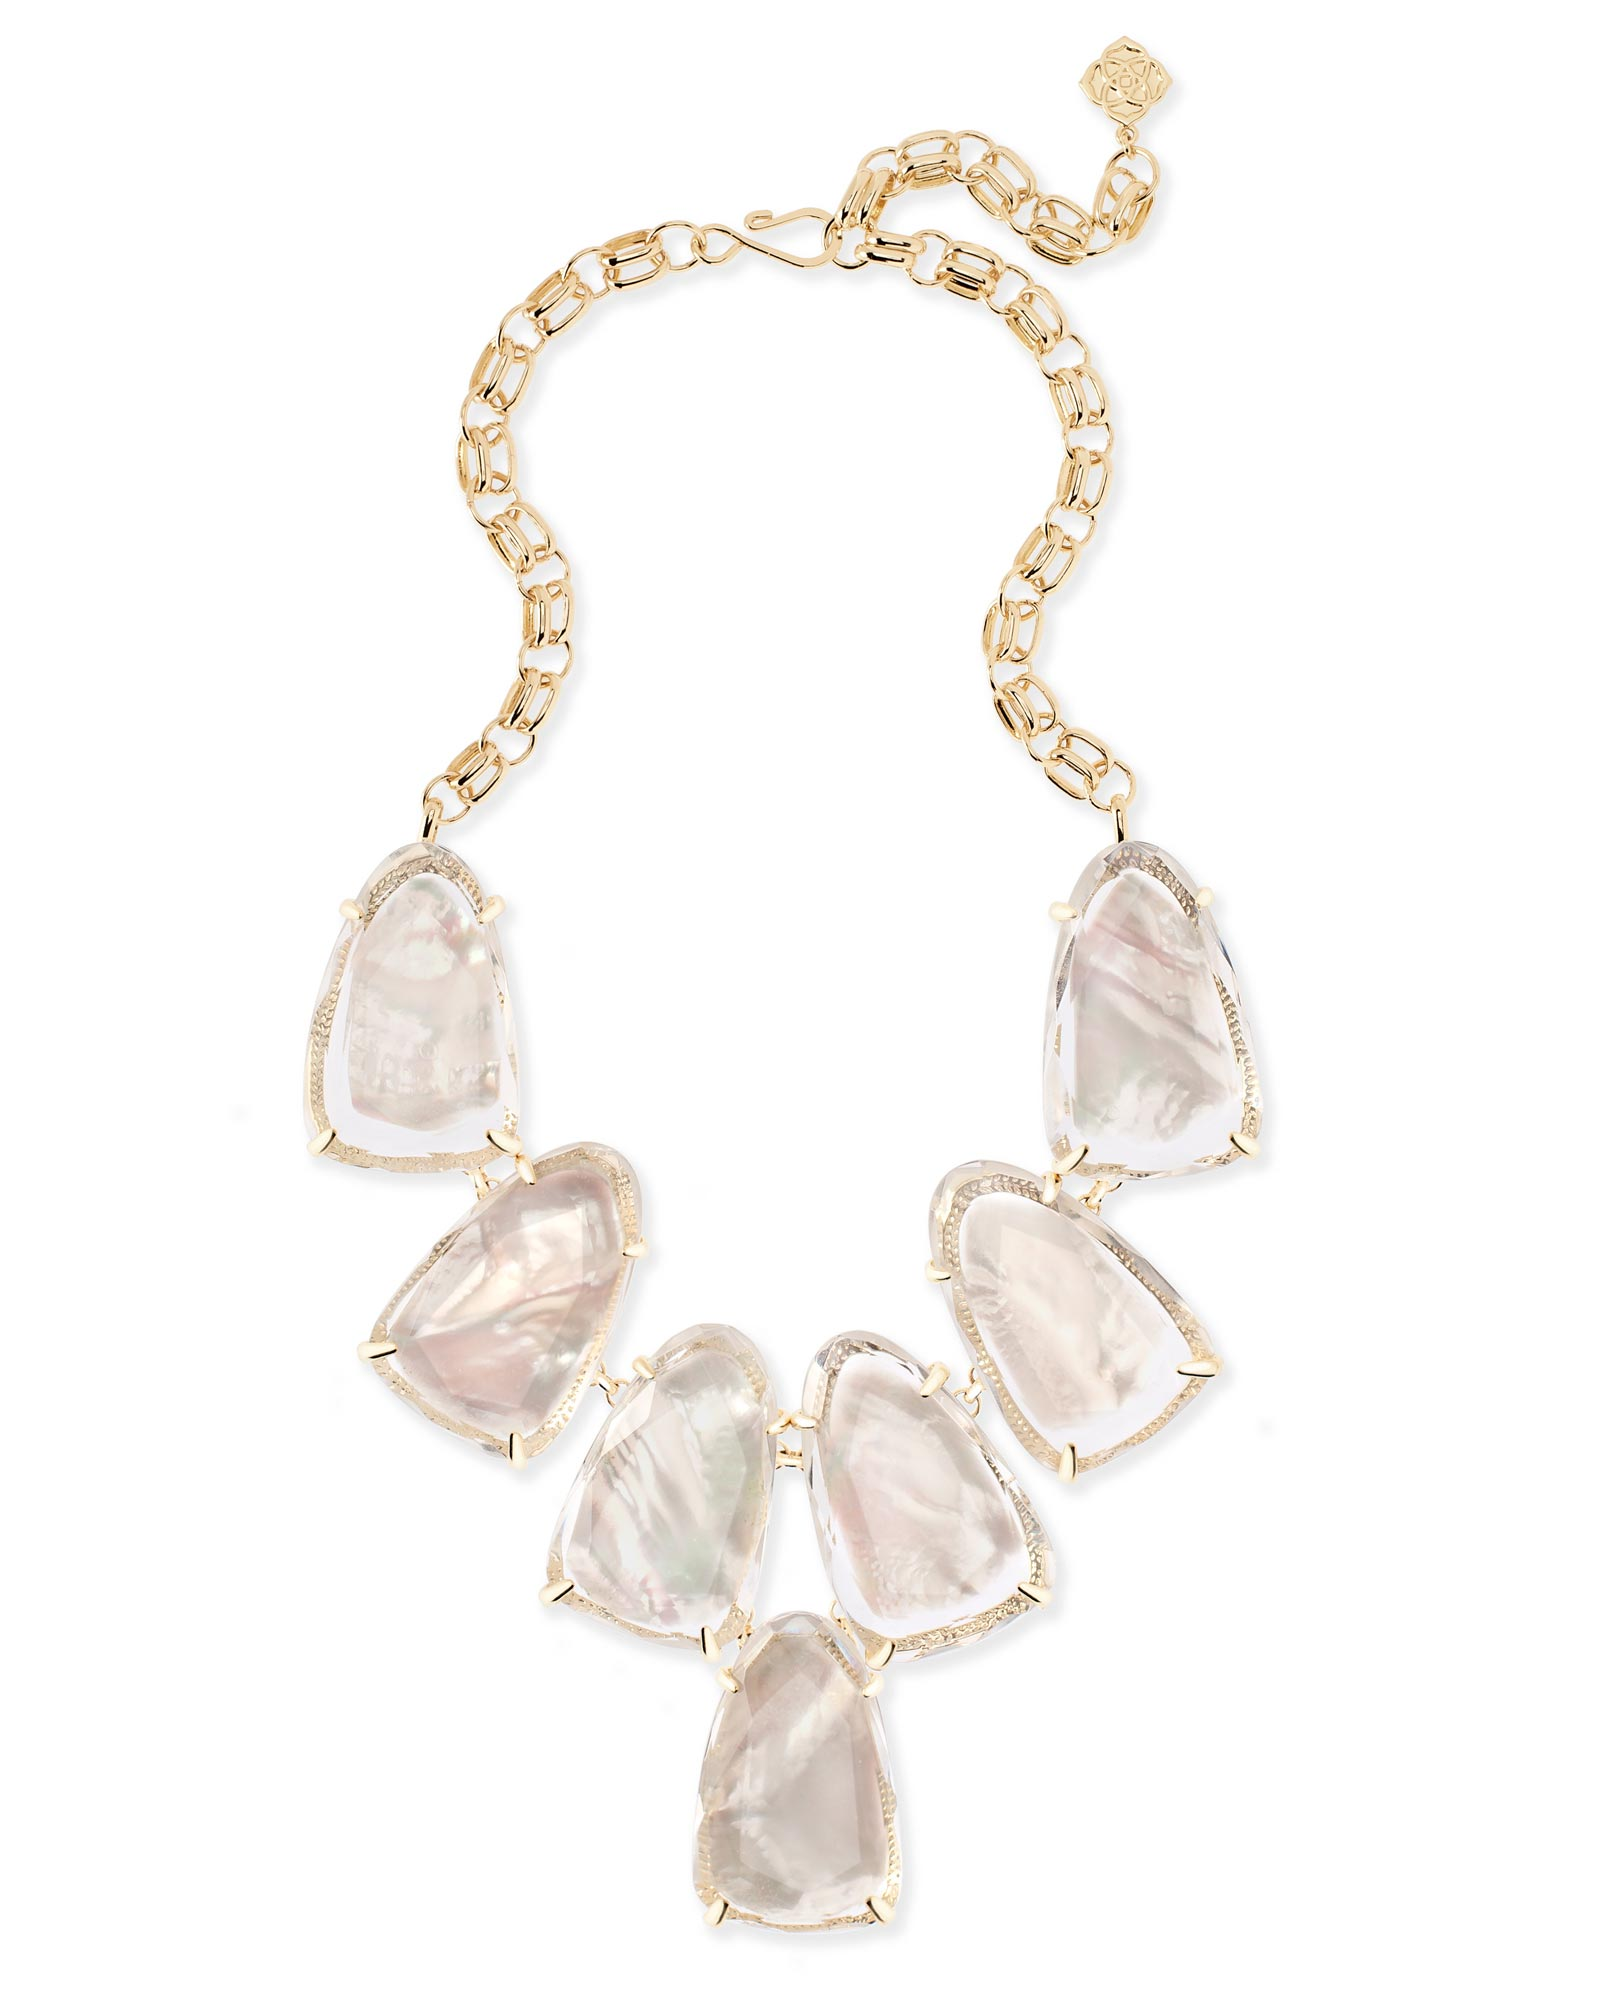 Harlow Statement Necklace in Suspended Ivory Pearl